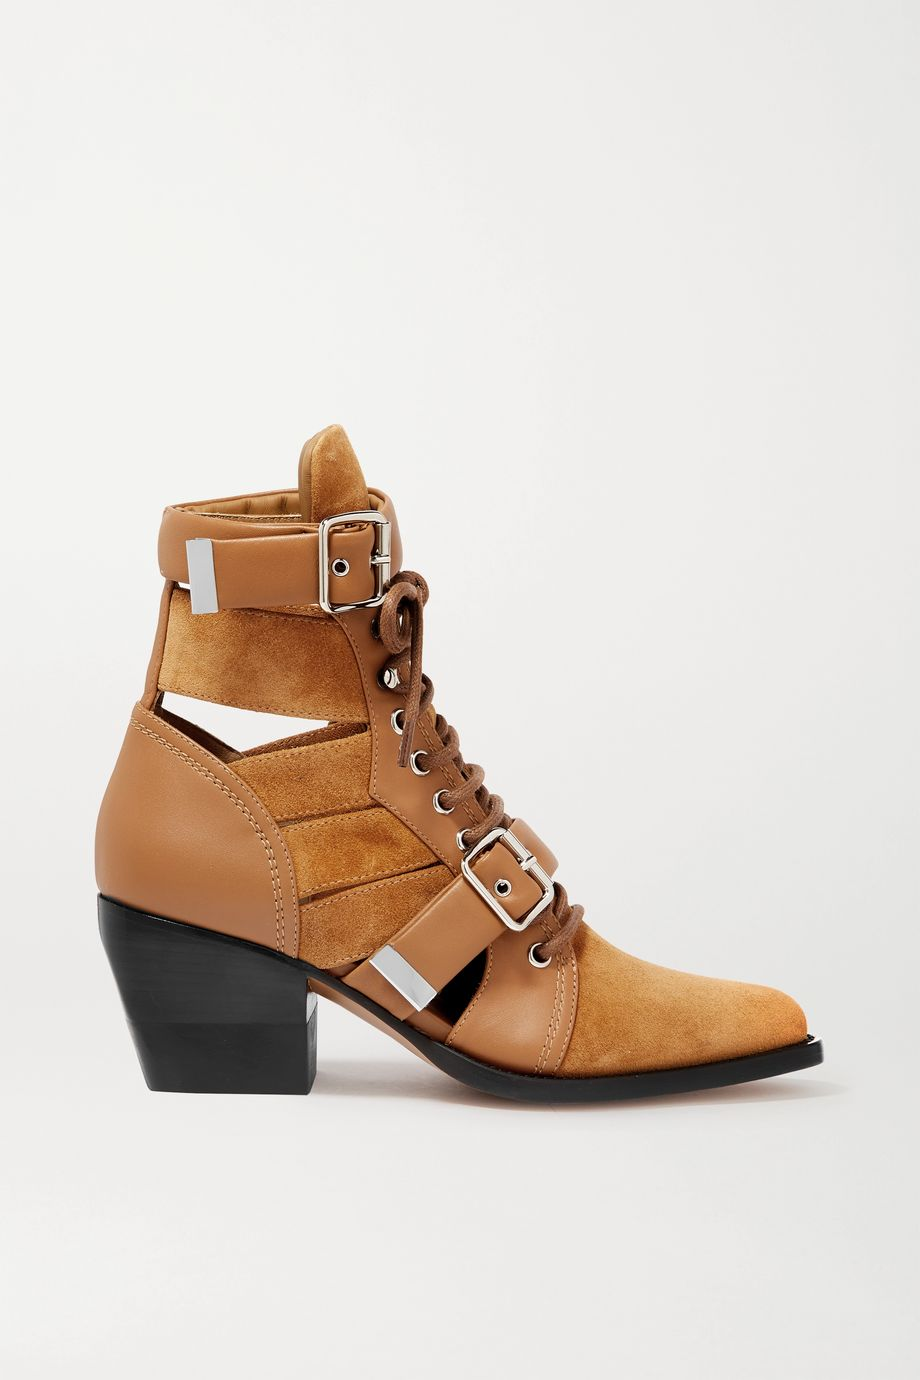 Chloé Rylee cutout suede and leather ankle boots